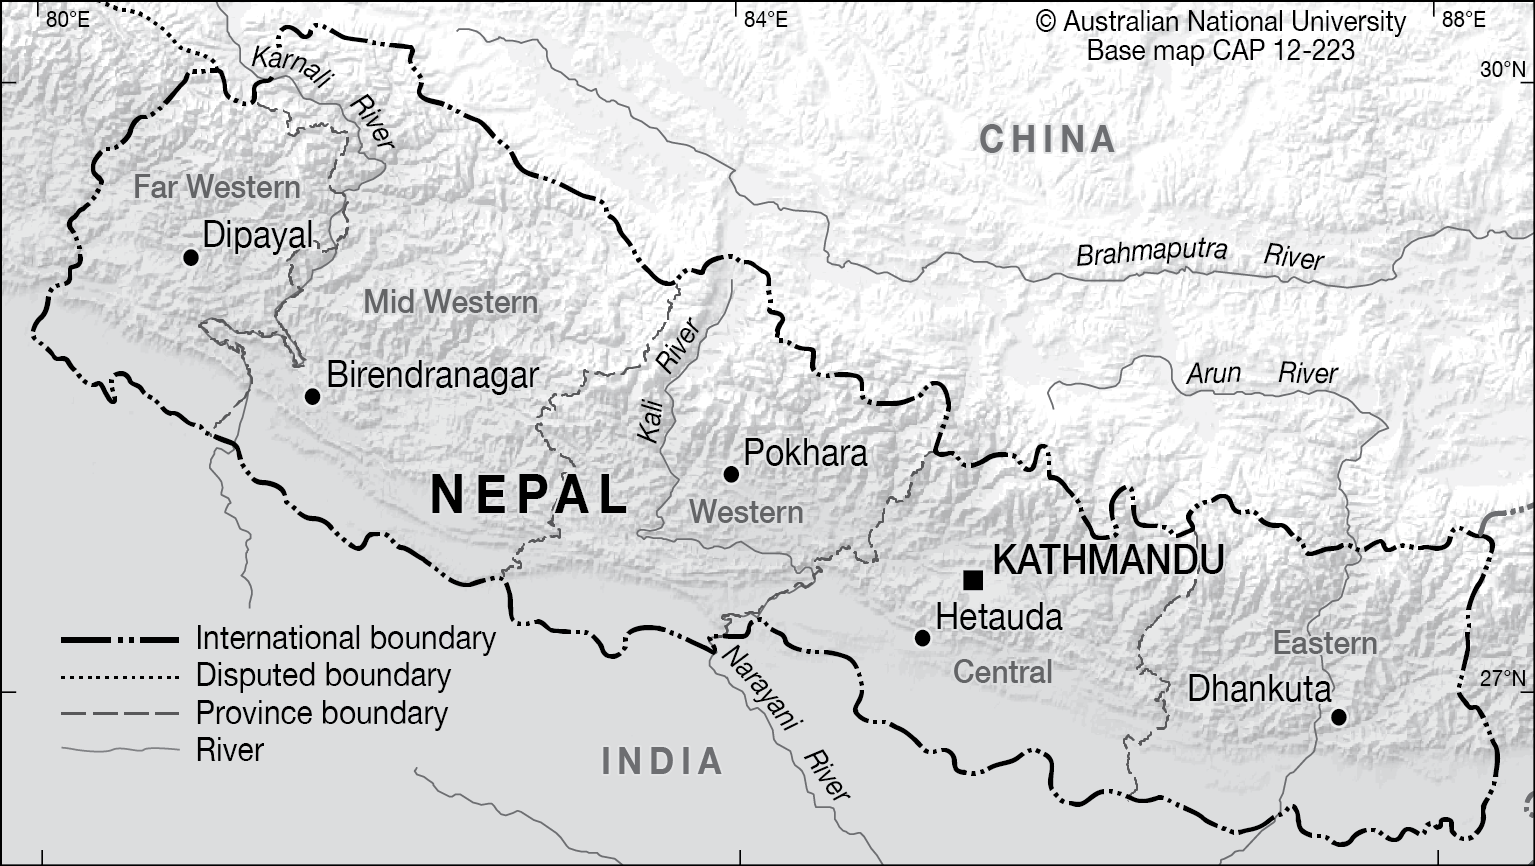 Nepal Elevation Map.Nepal Base Cartogis Services Maps Online Anu